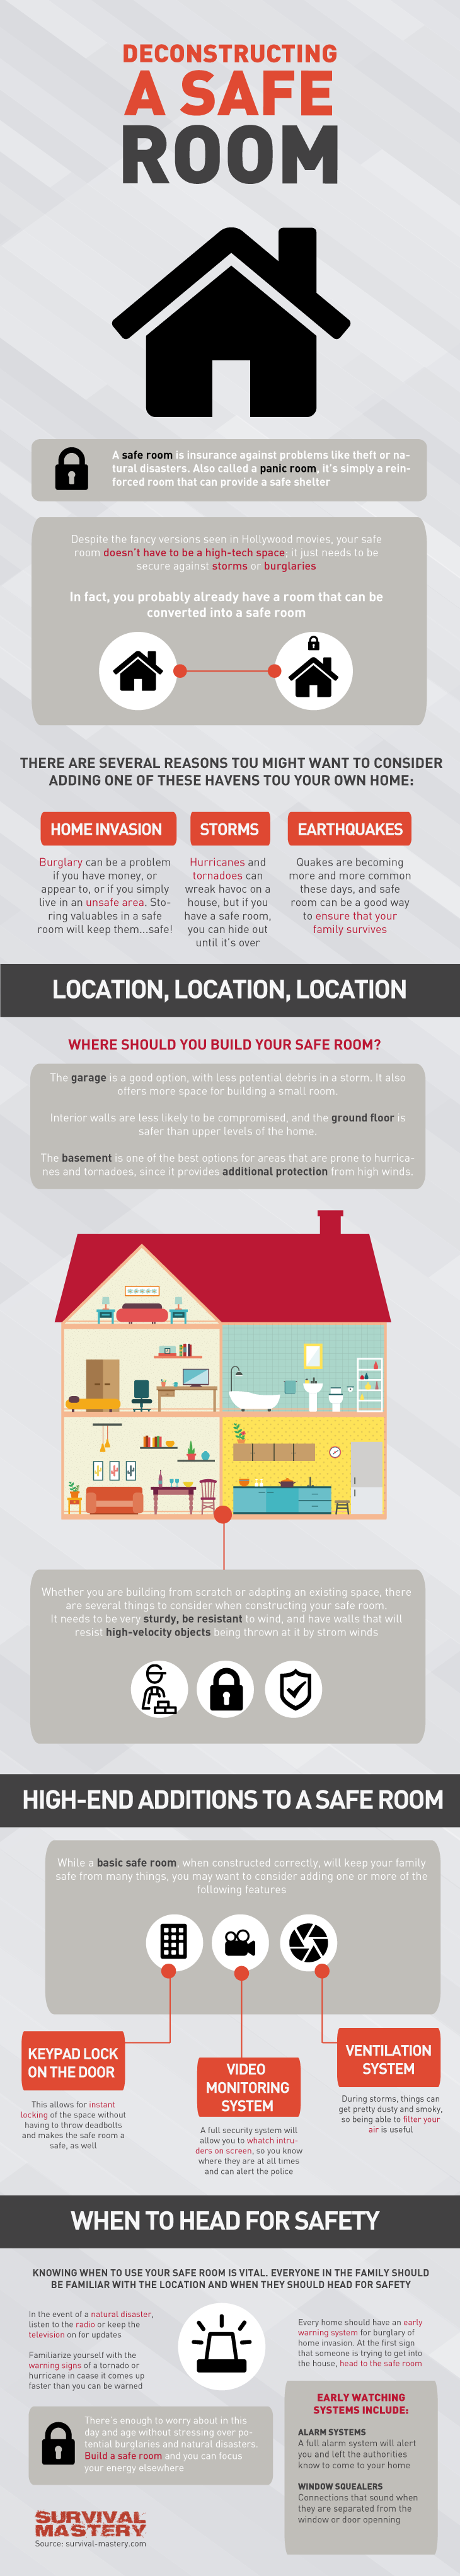 Safe_Room infographic